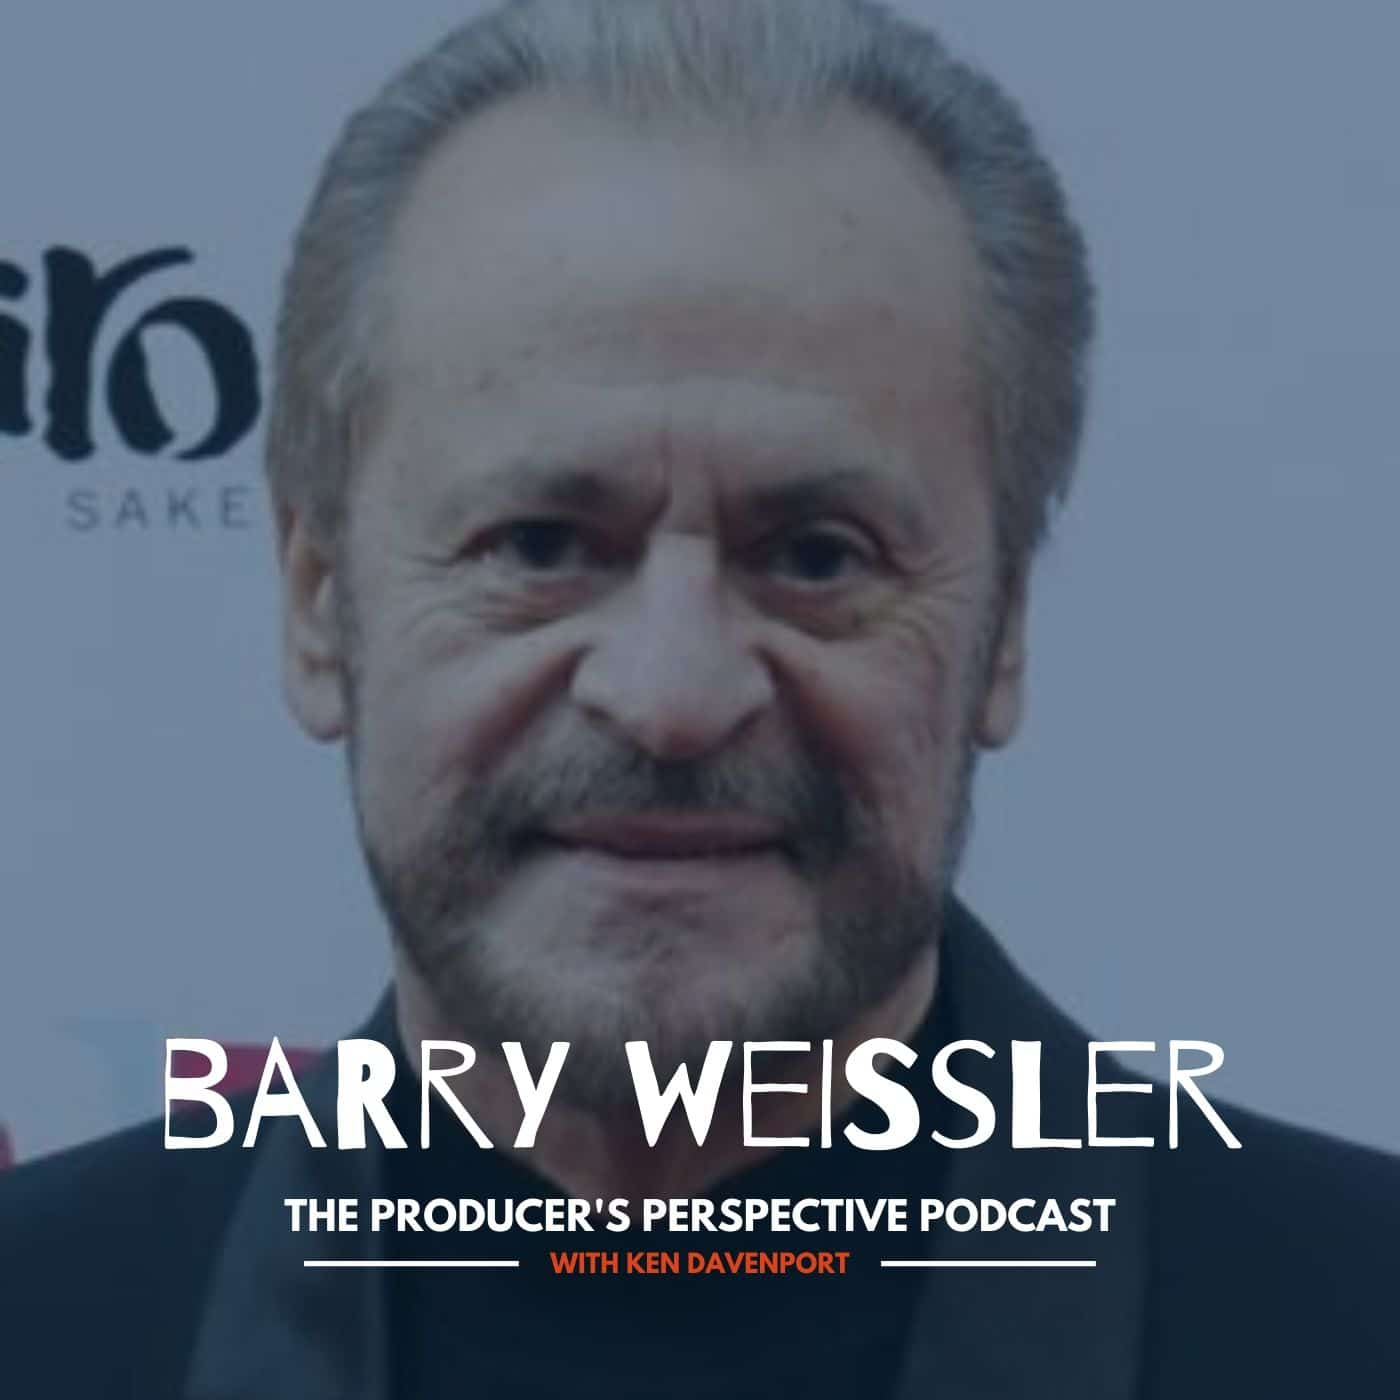 Ken Davenport's The Producer's Perspective Podcast Episode 84 - Barry Weissler